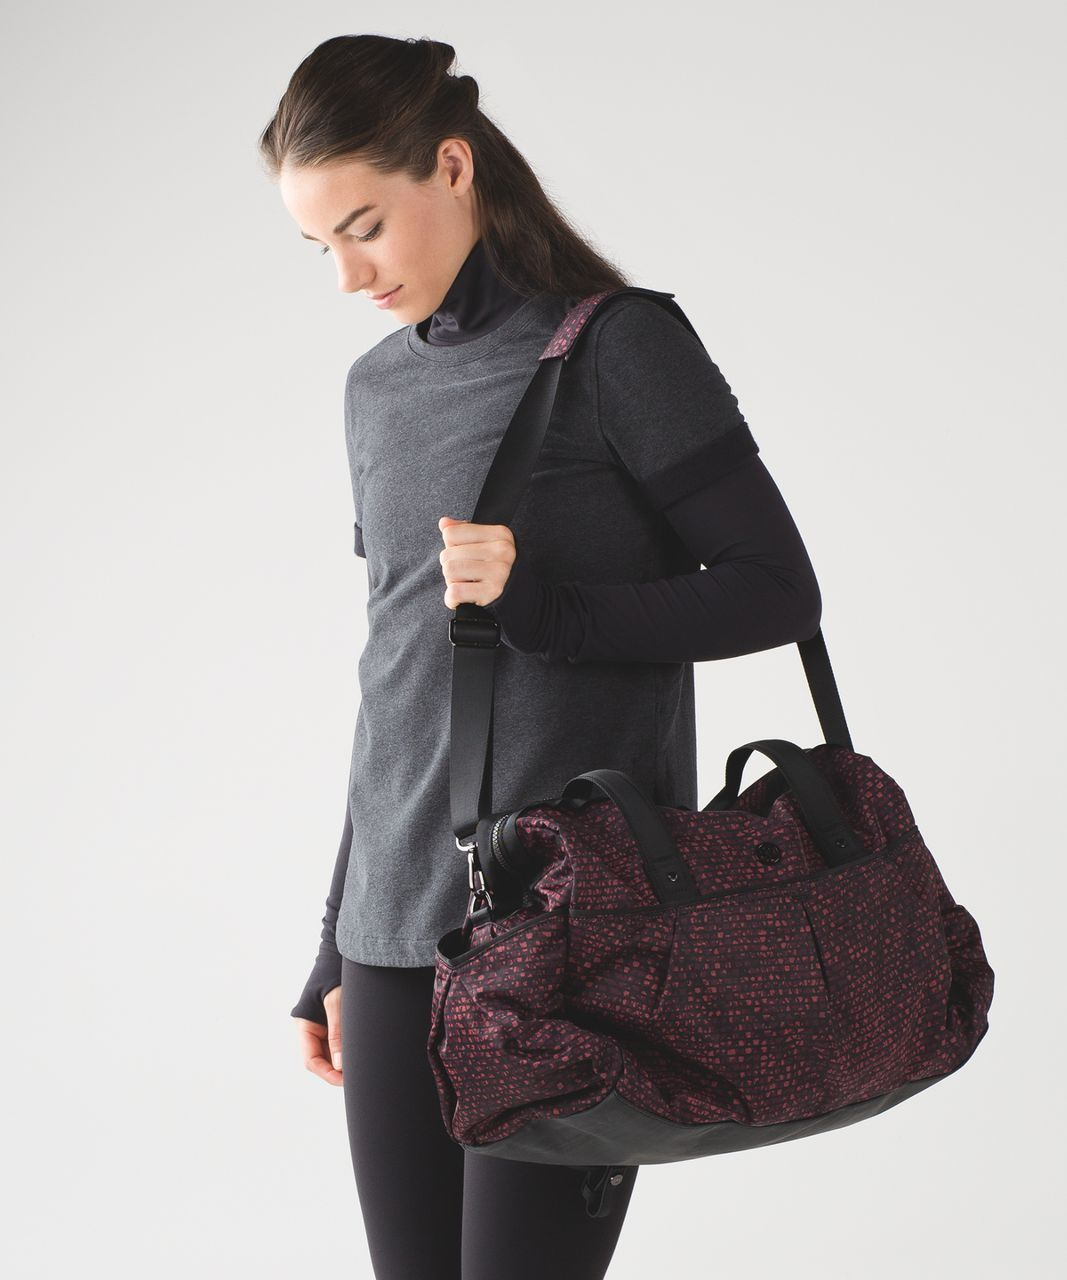 Aryana Starr Pictures Amazing lululemon all day duffel (heat) - shatter weave dust coral plum